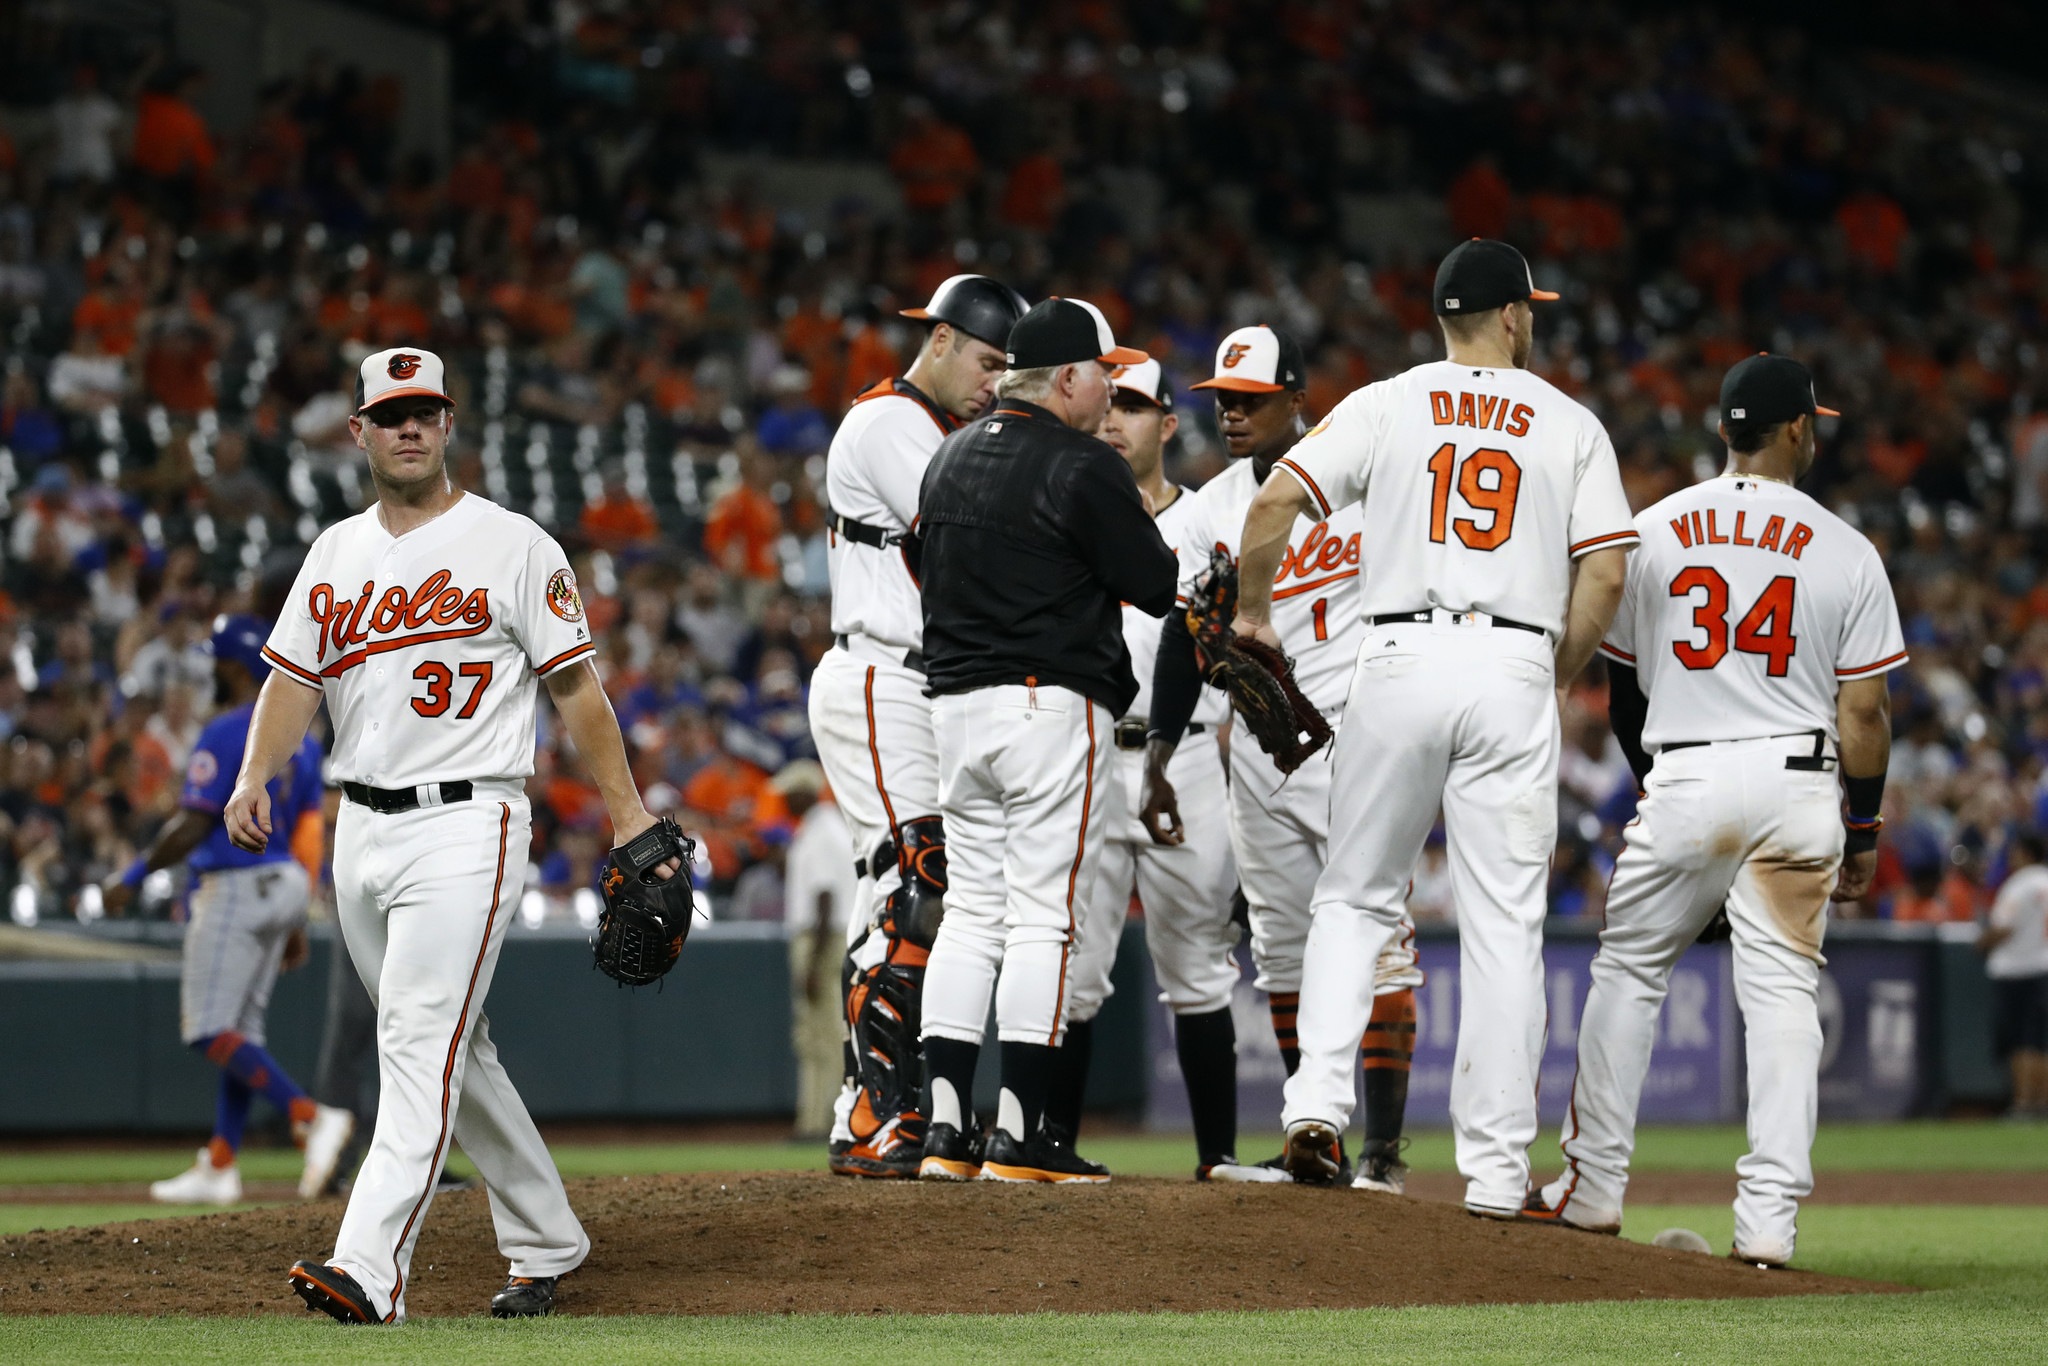 Bal-orioles-rewind-looking-back-at-wednesday-night-s-16-5-loss-to-the-mets-20180815